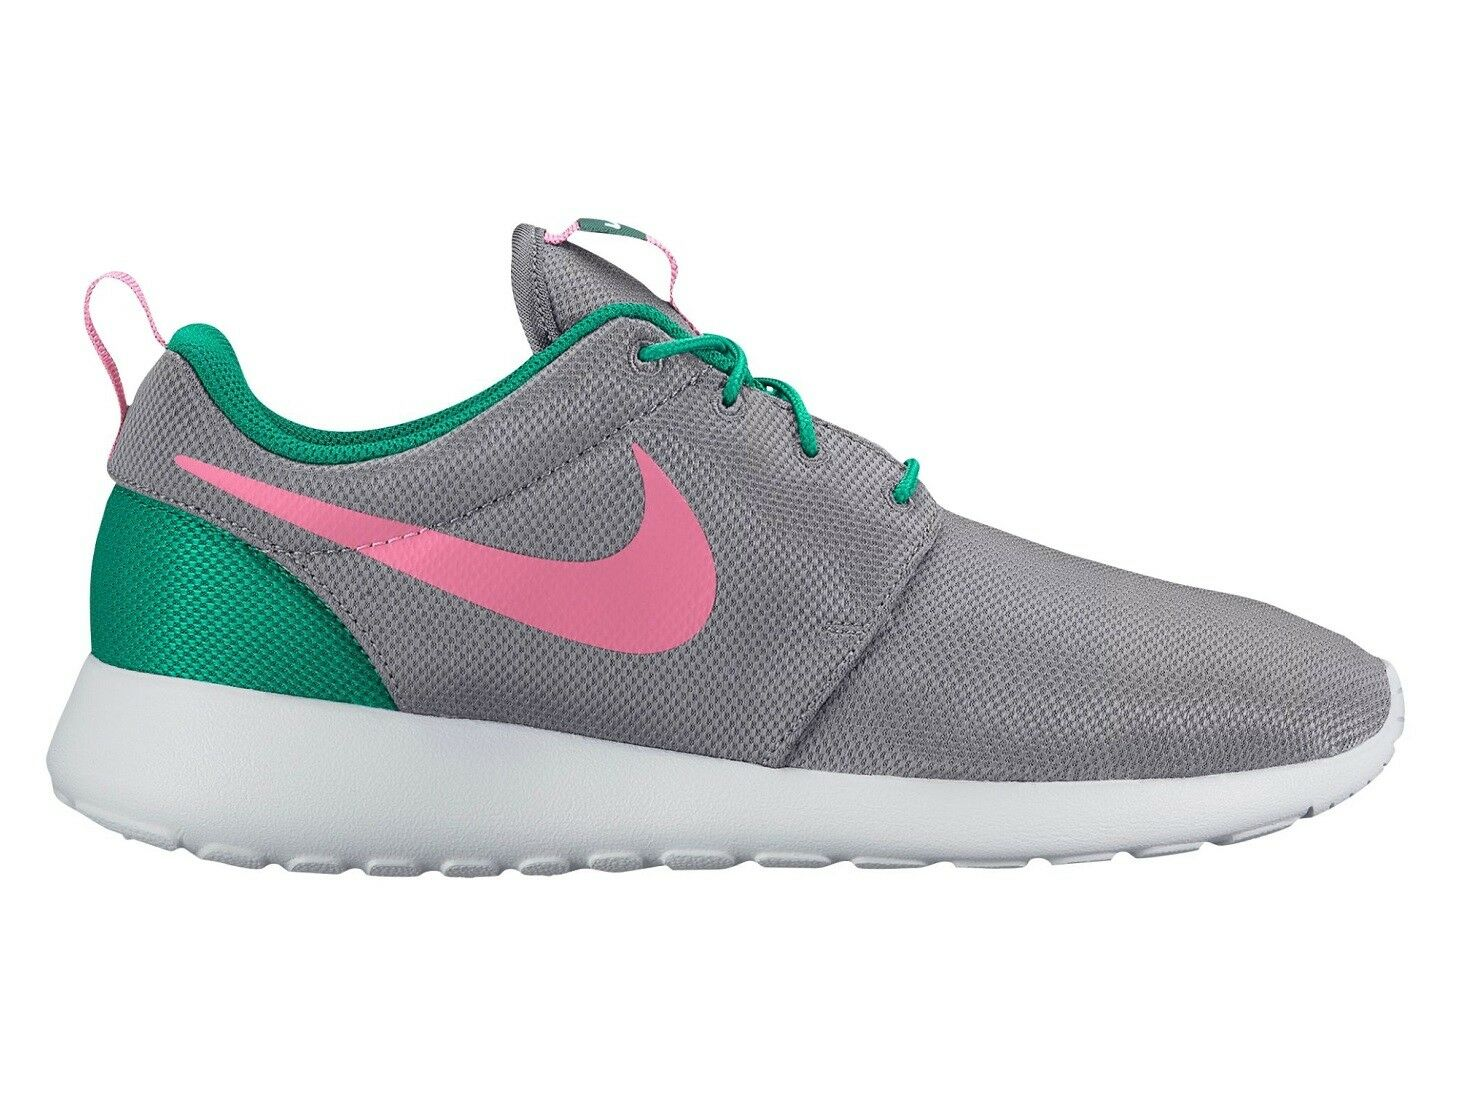 Nike Roshe One Watermelon Mens 511881-036 Grey Green Running Shoes Size 9.5